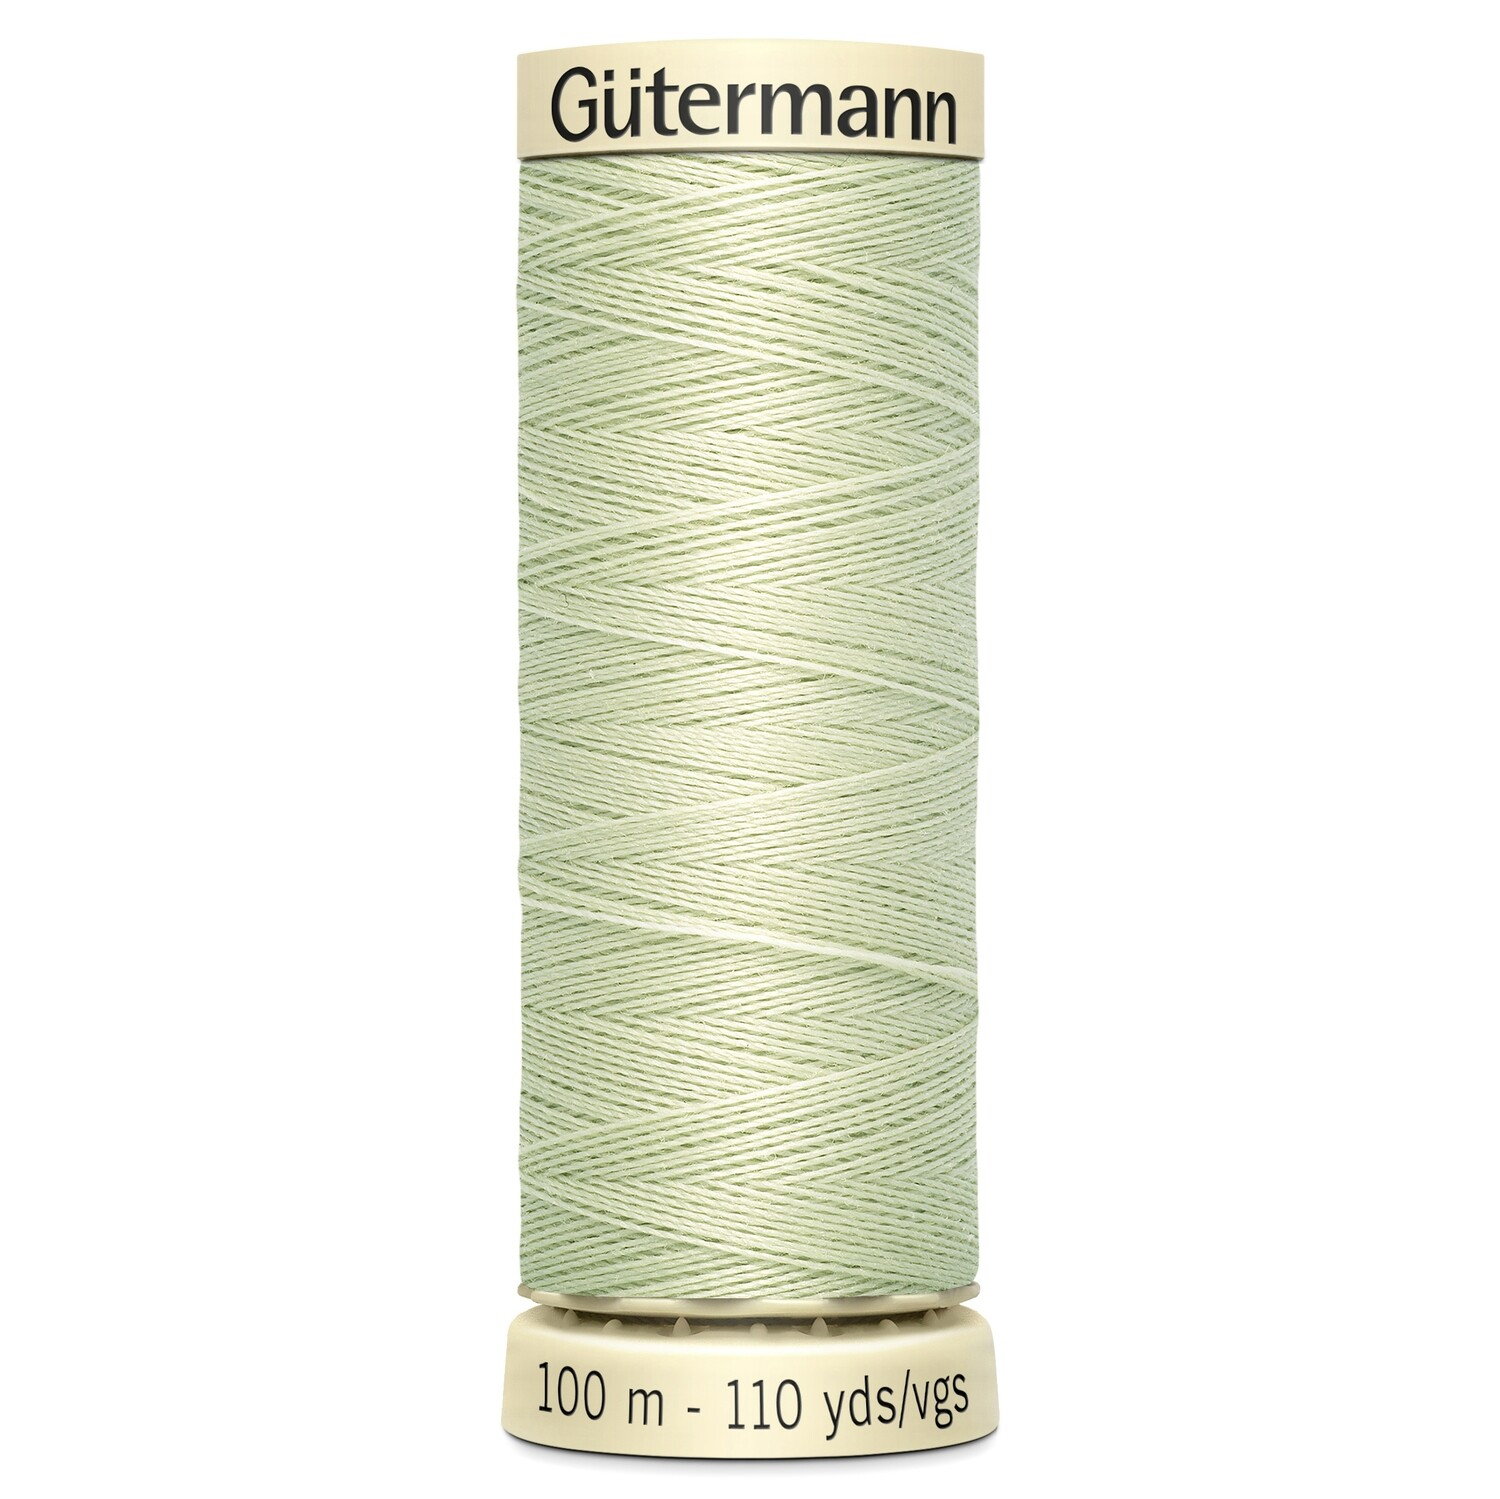 Gutermann Sew-All thread 818